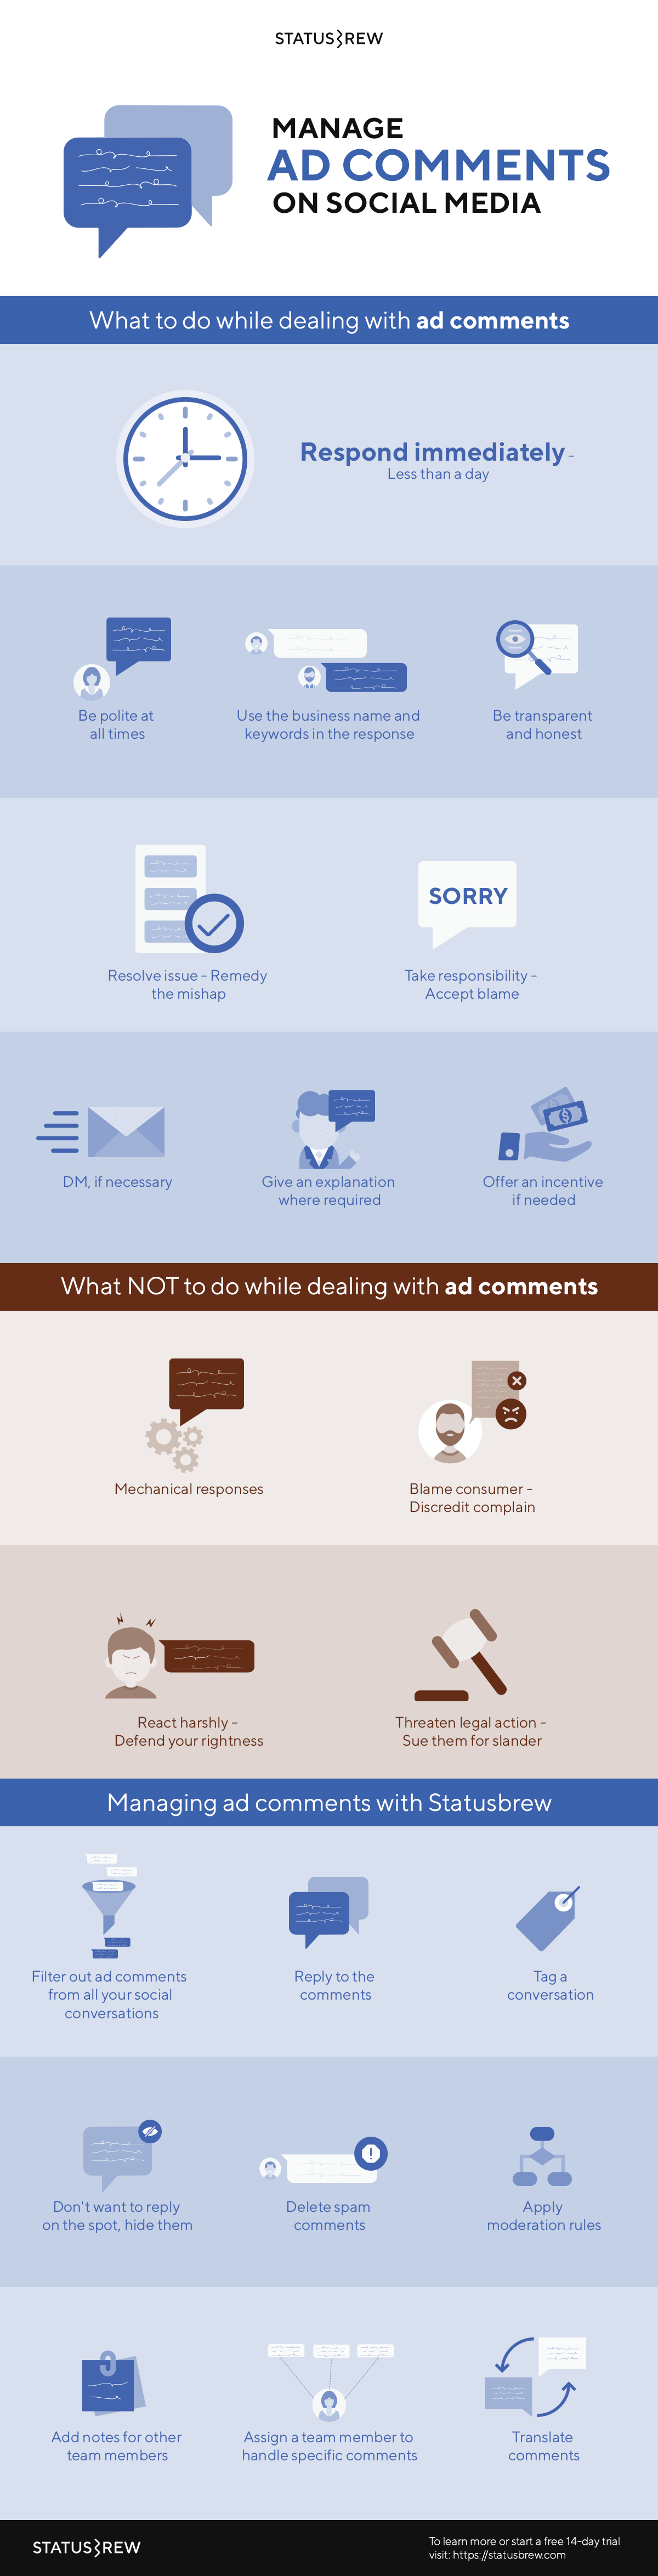 Infographic on how to manage ad comments on social media